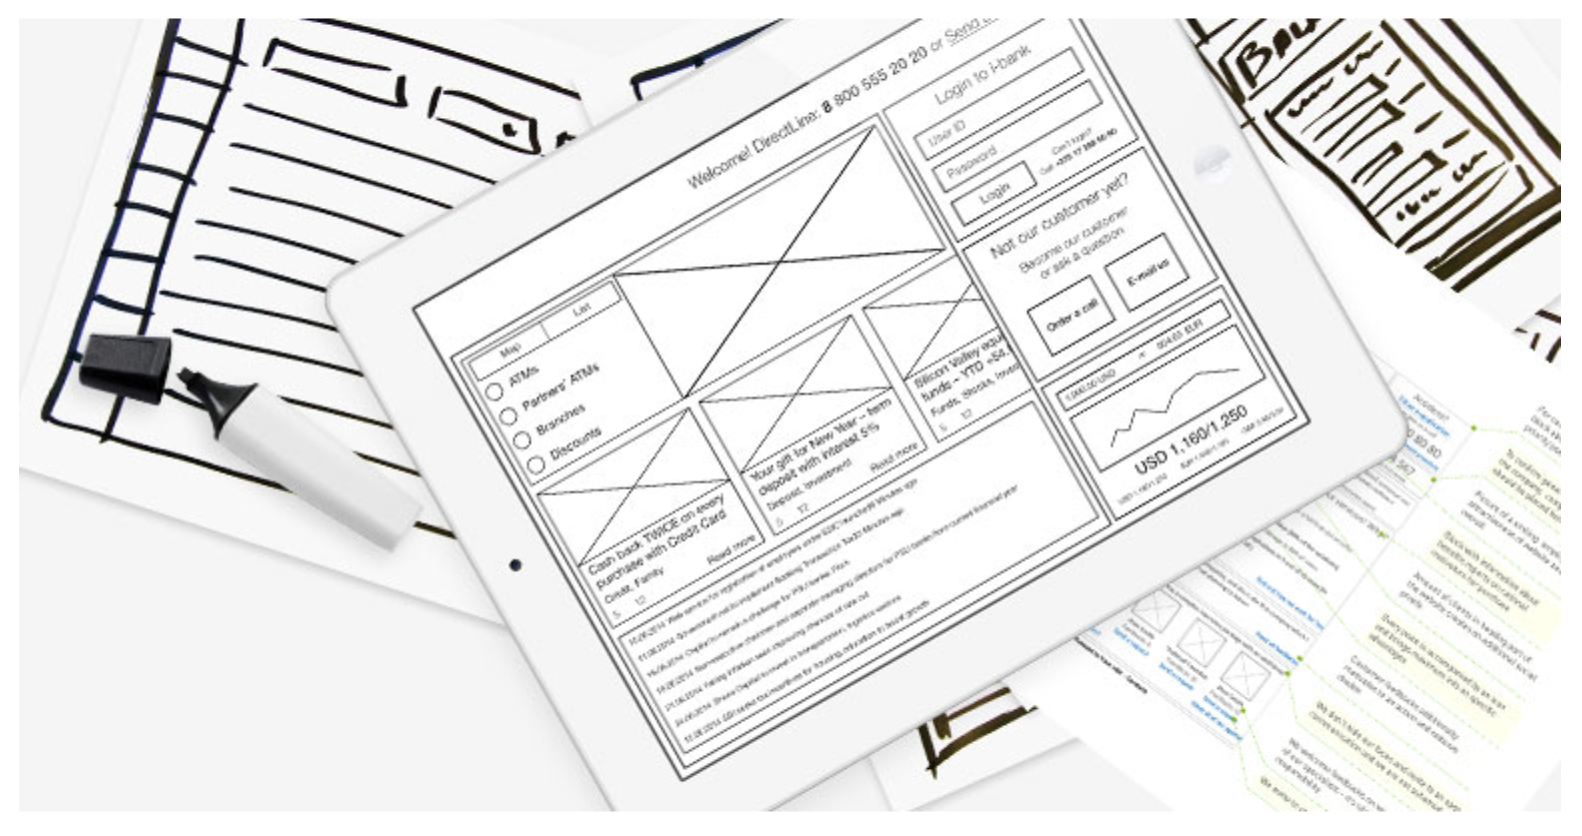 Wireframes are schematic screen blueprints that show skeleton of next interface